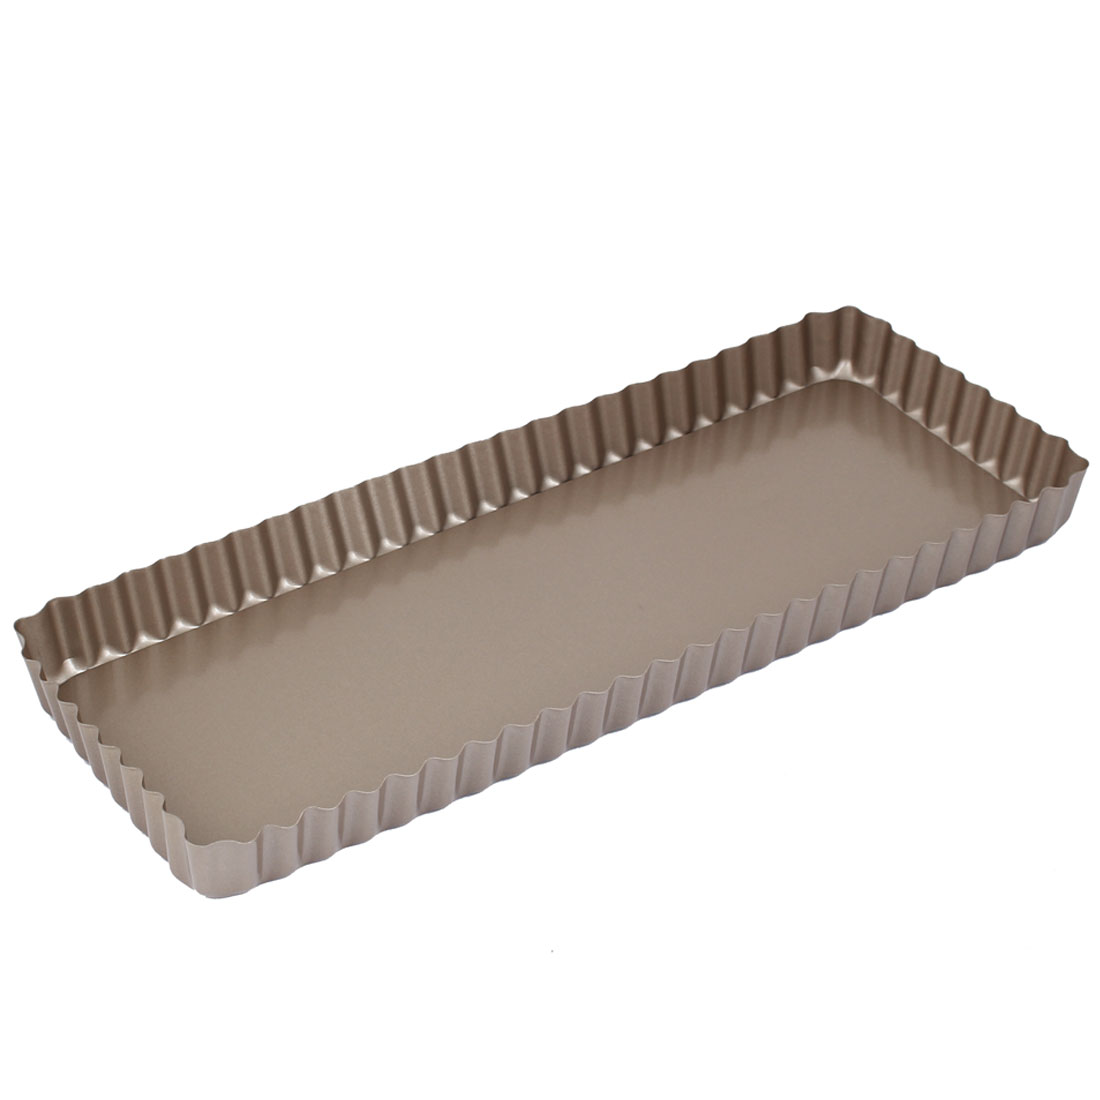 Cake Shop Restaurant Toast Bread Baking Mold Mould Bakeware Pan 36 x 14.5cm